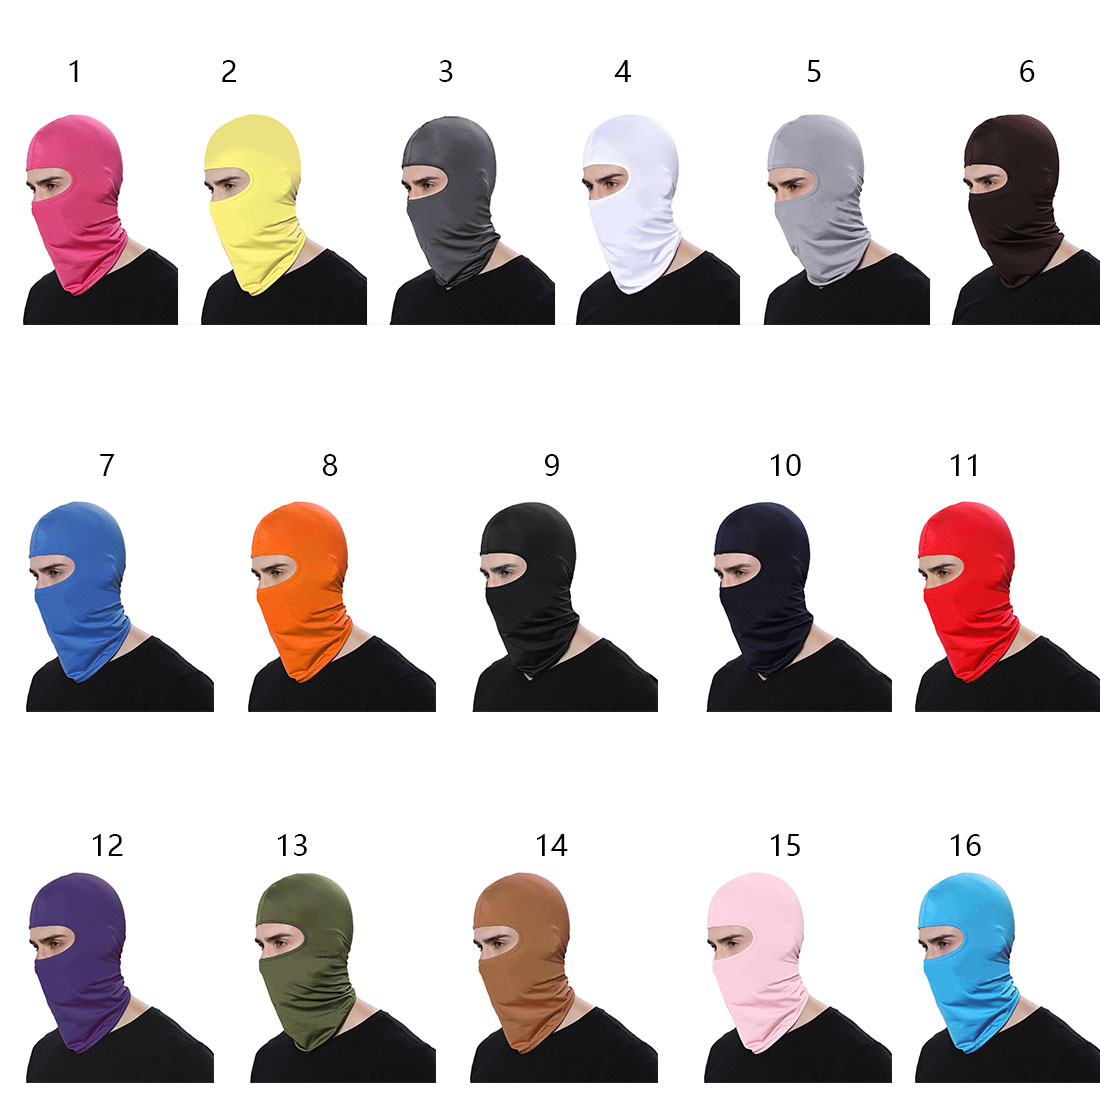 Motorcycle Face Mask Winter Warm Ski Board Windproof Cap Outdoor Sports Neck Face Mask Police Cycling Balaclavas CAR-partment full face cover mask winter ski mask beanie cs hat windproof neck warmer for outdoor snowboard ski motorcycle for christmas gift